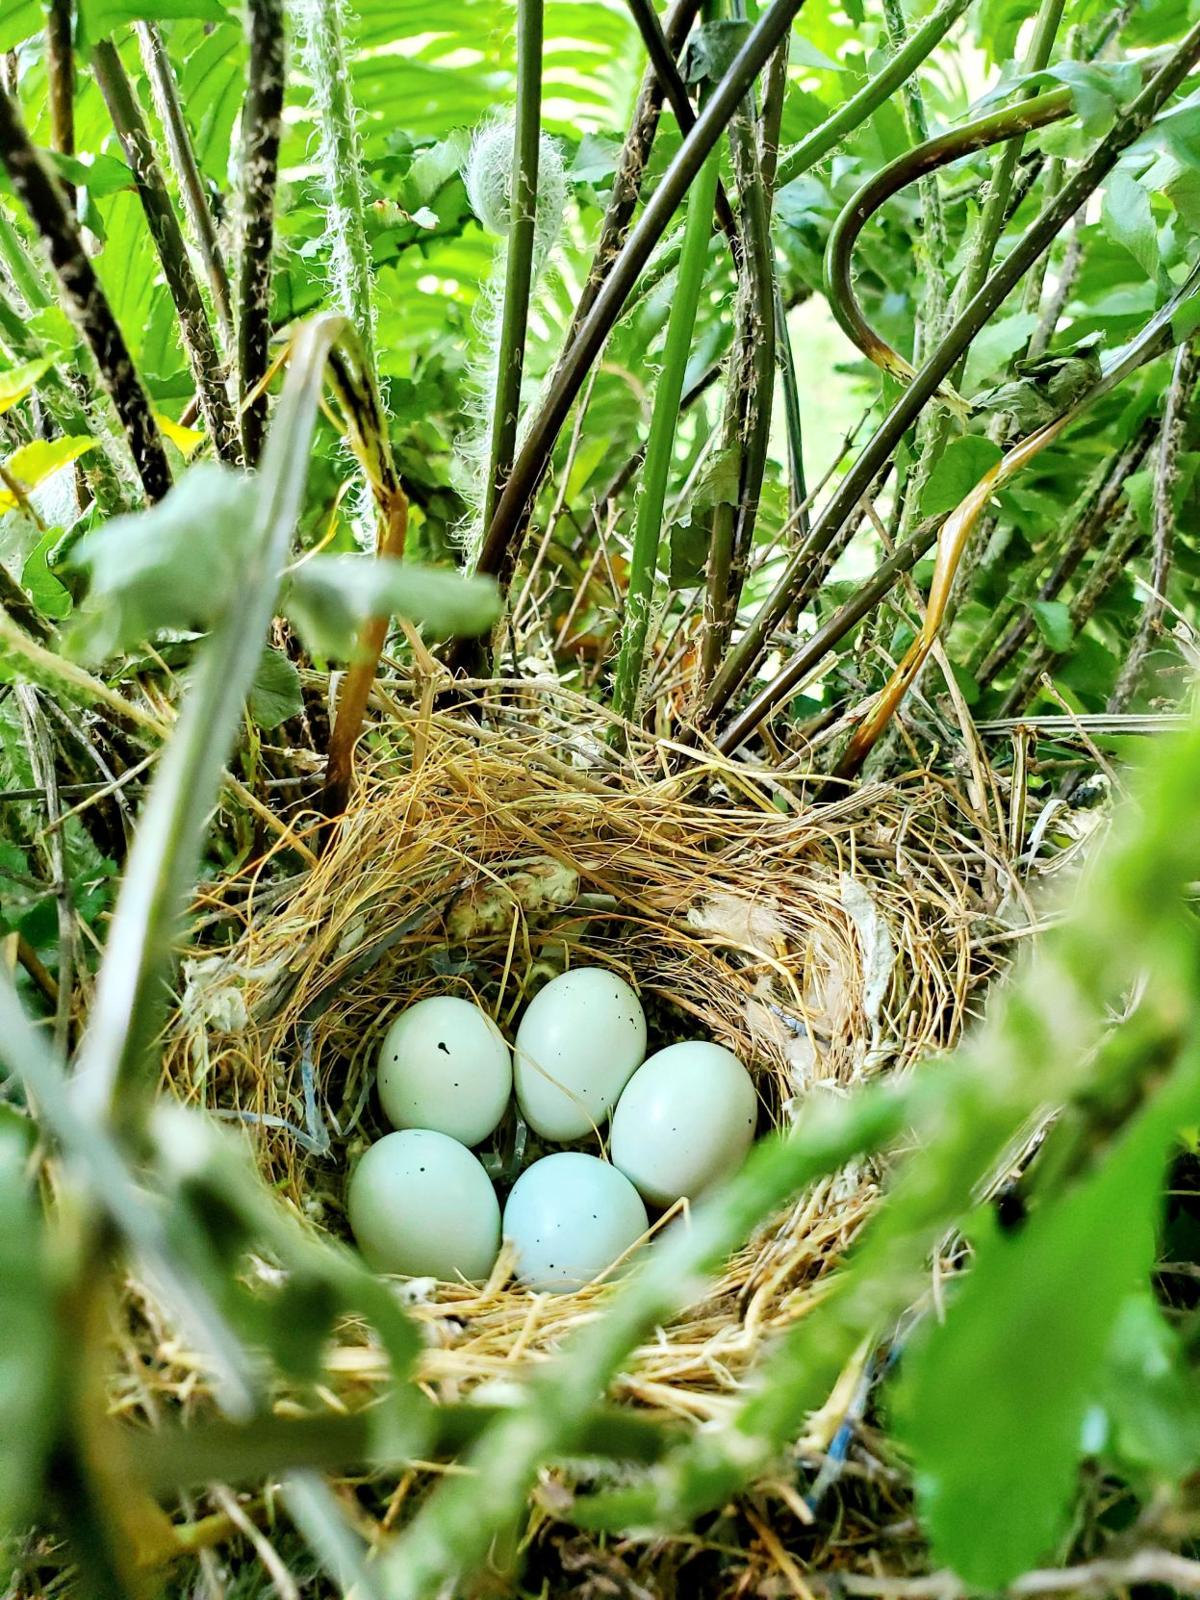 The empty nest: A front porch mystery